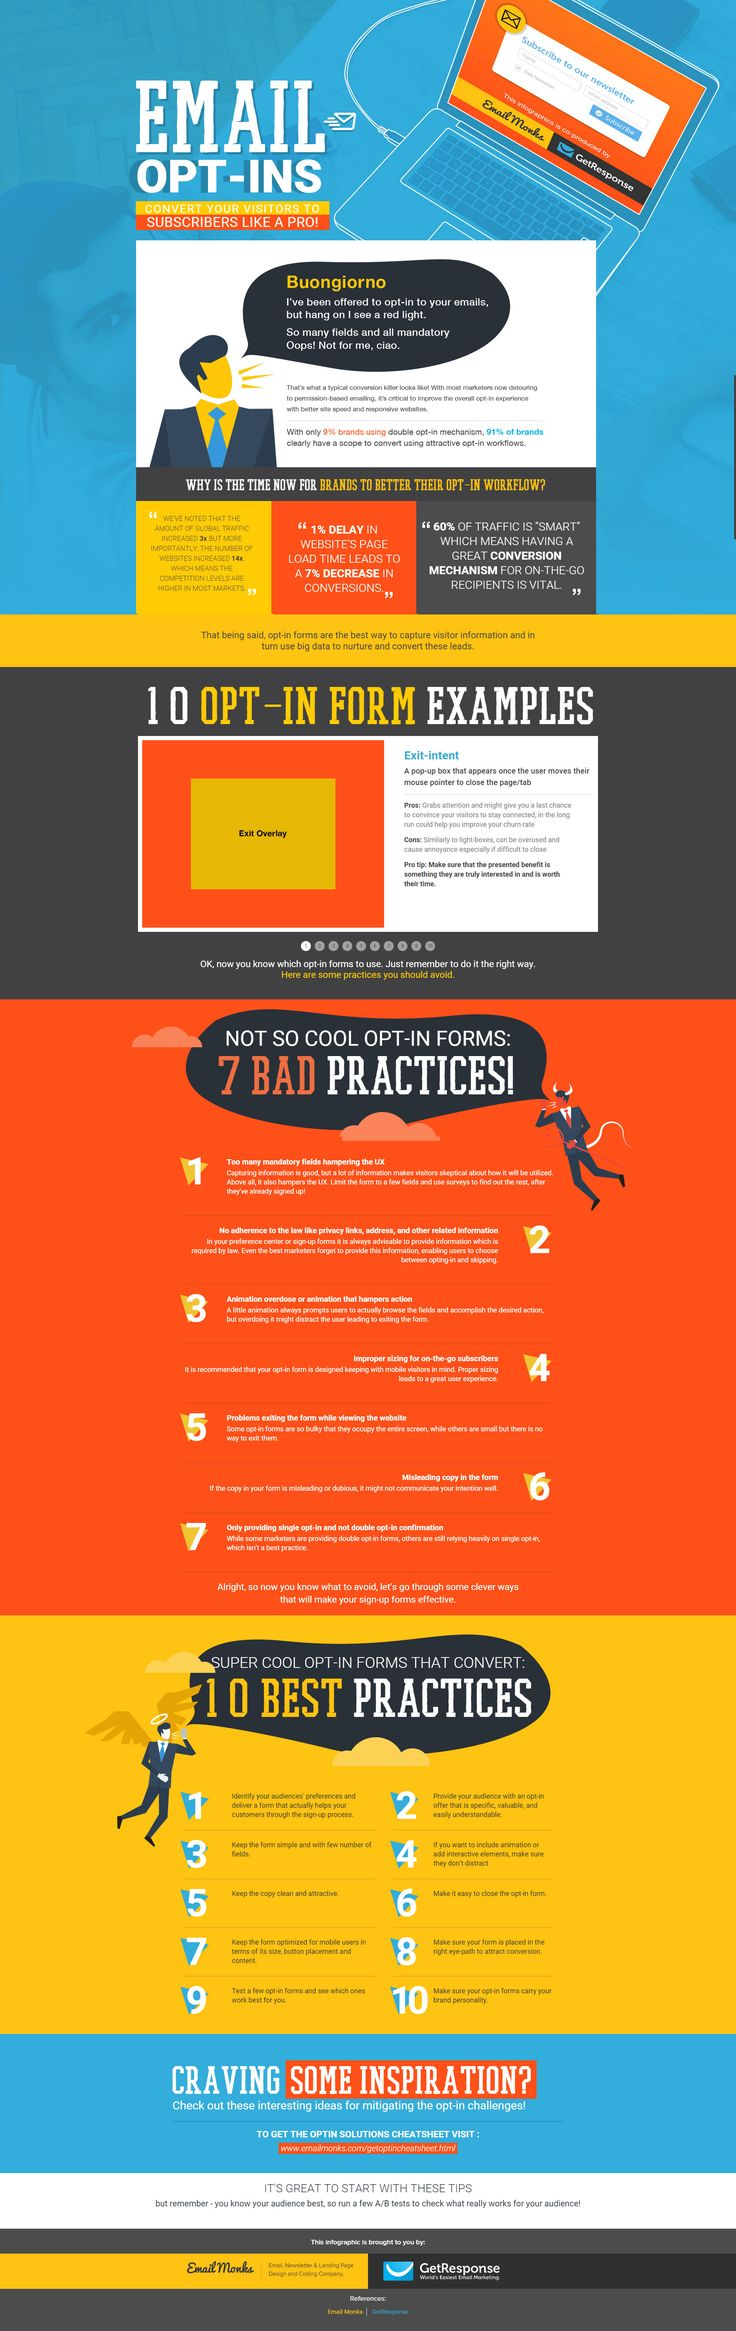 Email Opt-ins Infographic